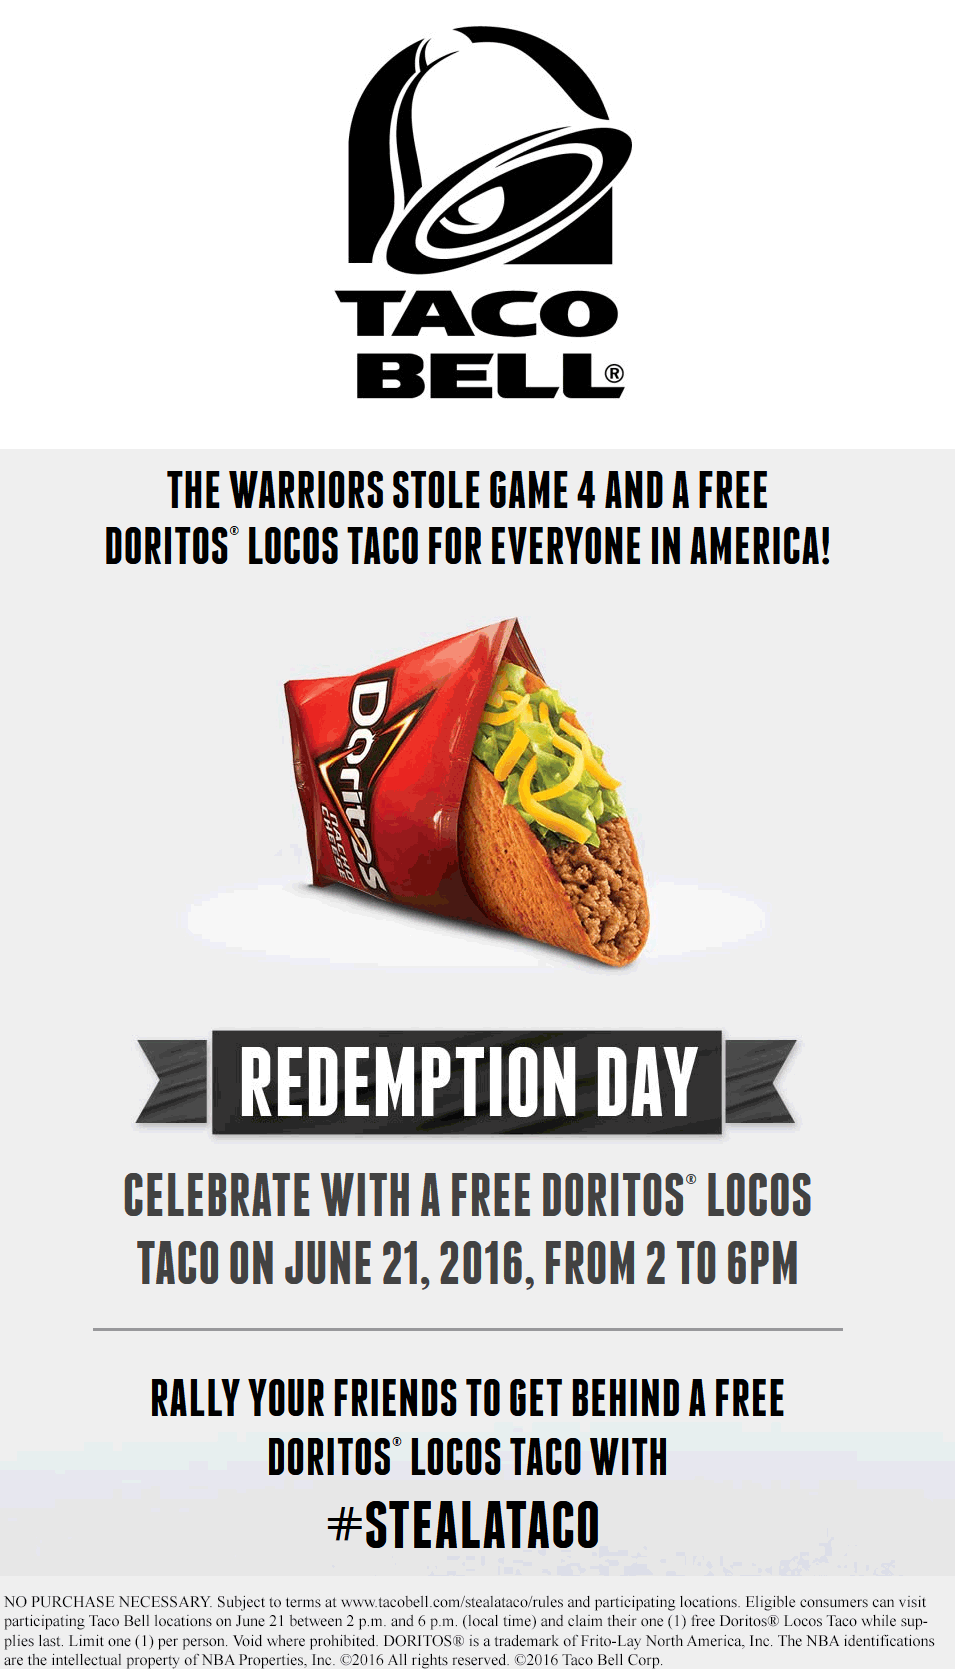 TacoBell.com Promo Coupon Free Doritos loco taco 2-6p the 21st at Taco Bell